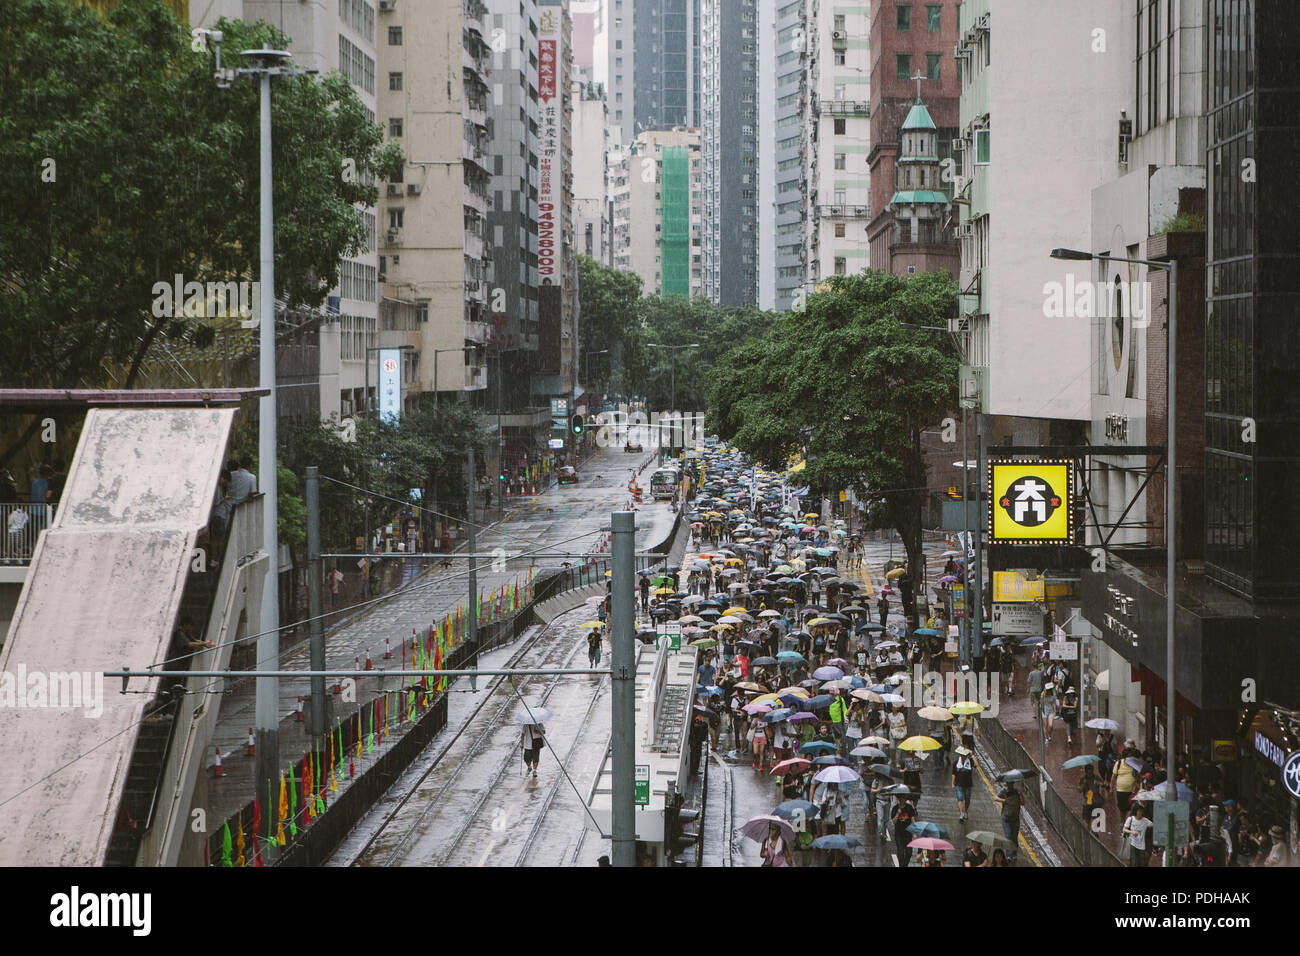 July 1, 2017 - Hong Kong, Hong Kong - Thousands of demonstrators seen marching through the streets of Hong Kong..Thousands came together and demonstrated to mark the 20th anniversary of the Handover from Britain to China, Hong Kong's return to China on July 1st 1997. The protestors marched through sun and rain from Victoria Park to Admiralty, taking a stand on a variety of human-rights-related causes. (Credit Image: © Viola Gaskell/SOPA Images via ZUMA Wire) - Stock Image